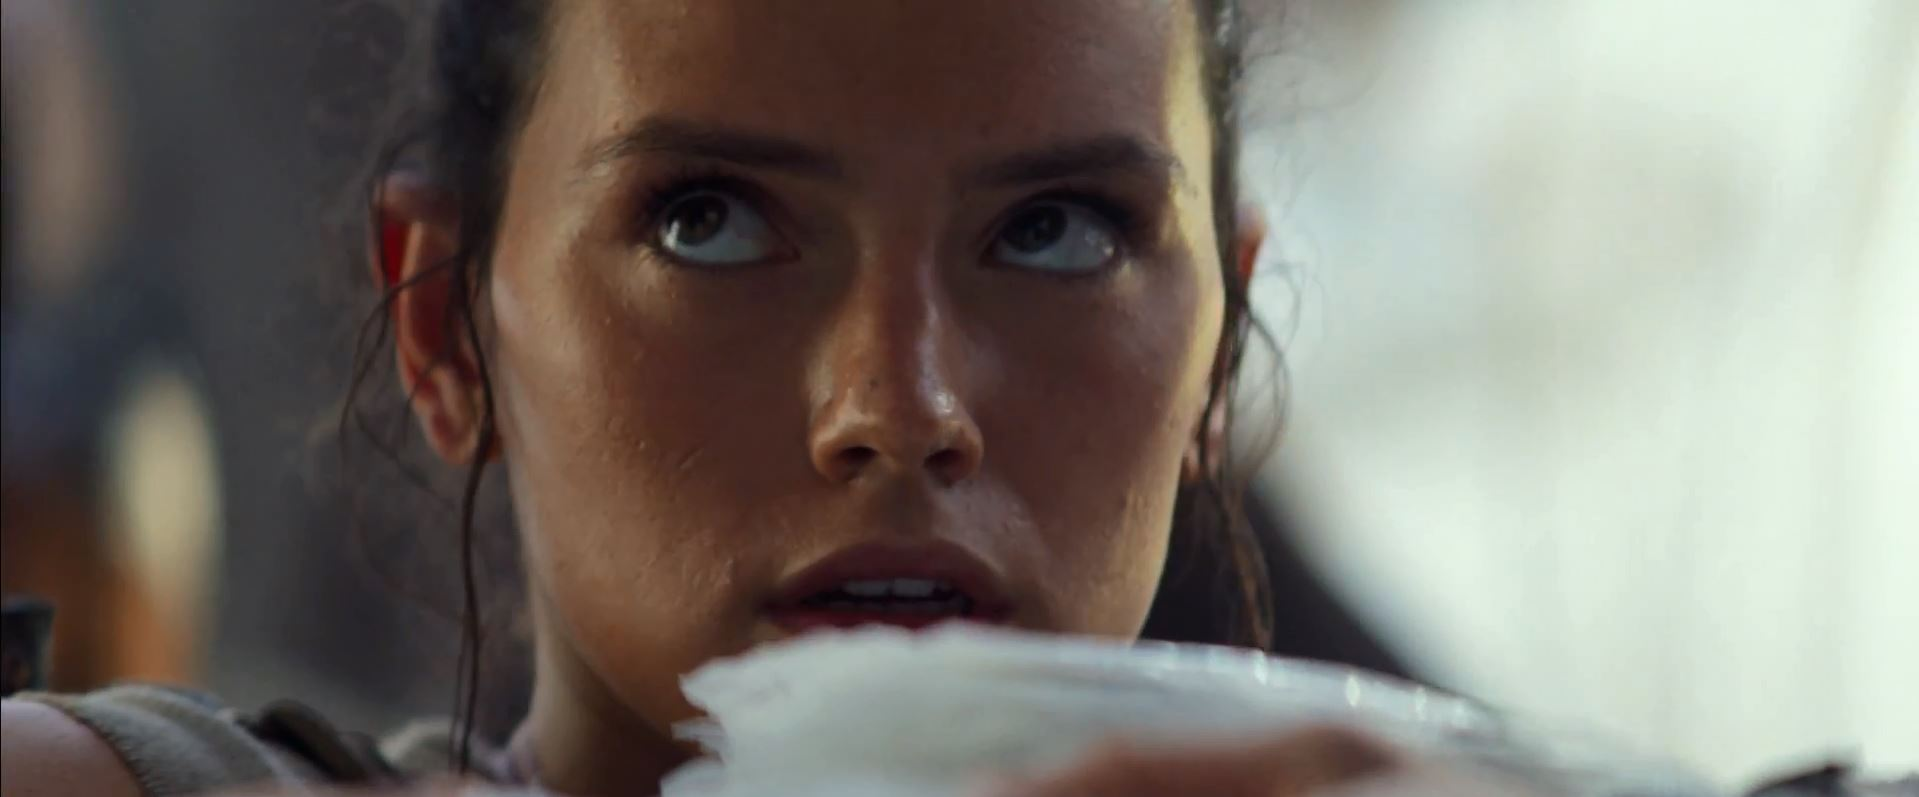 Daisy Ridley as Rey. New Star Wars The Force Awakens Trailer Released!